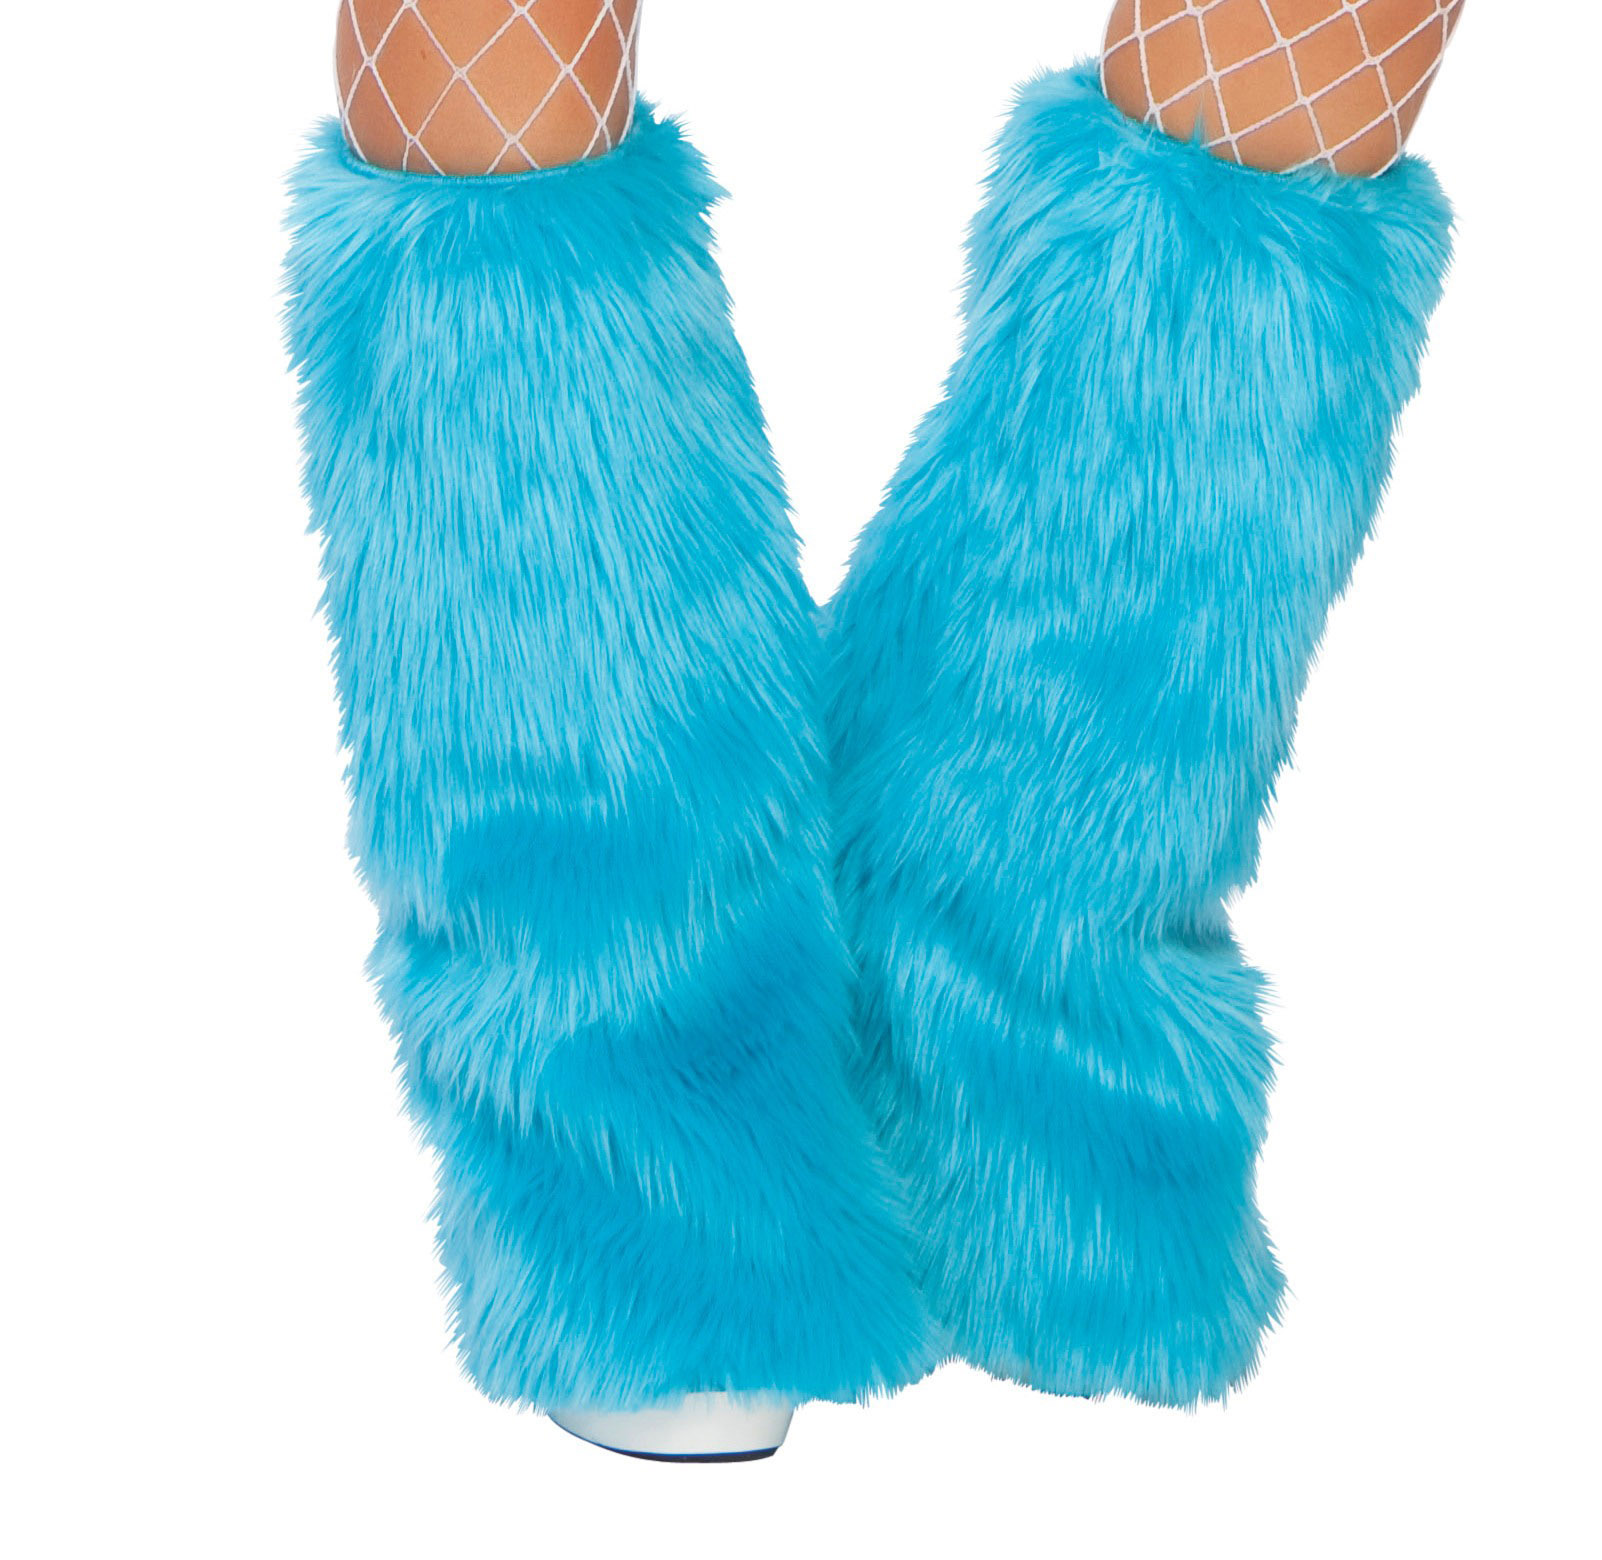 Leg Warmers - Choice Of Colors